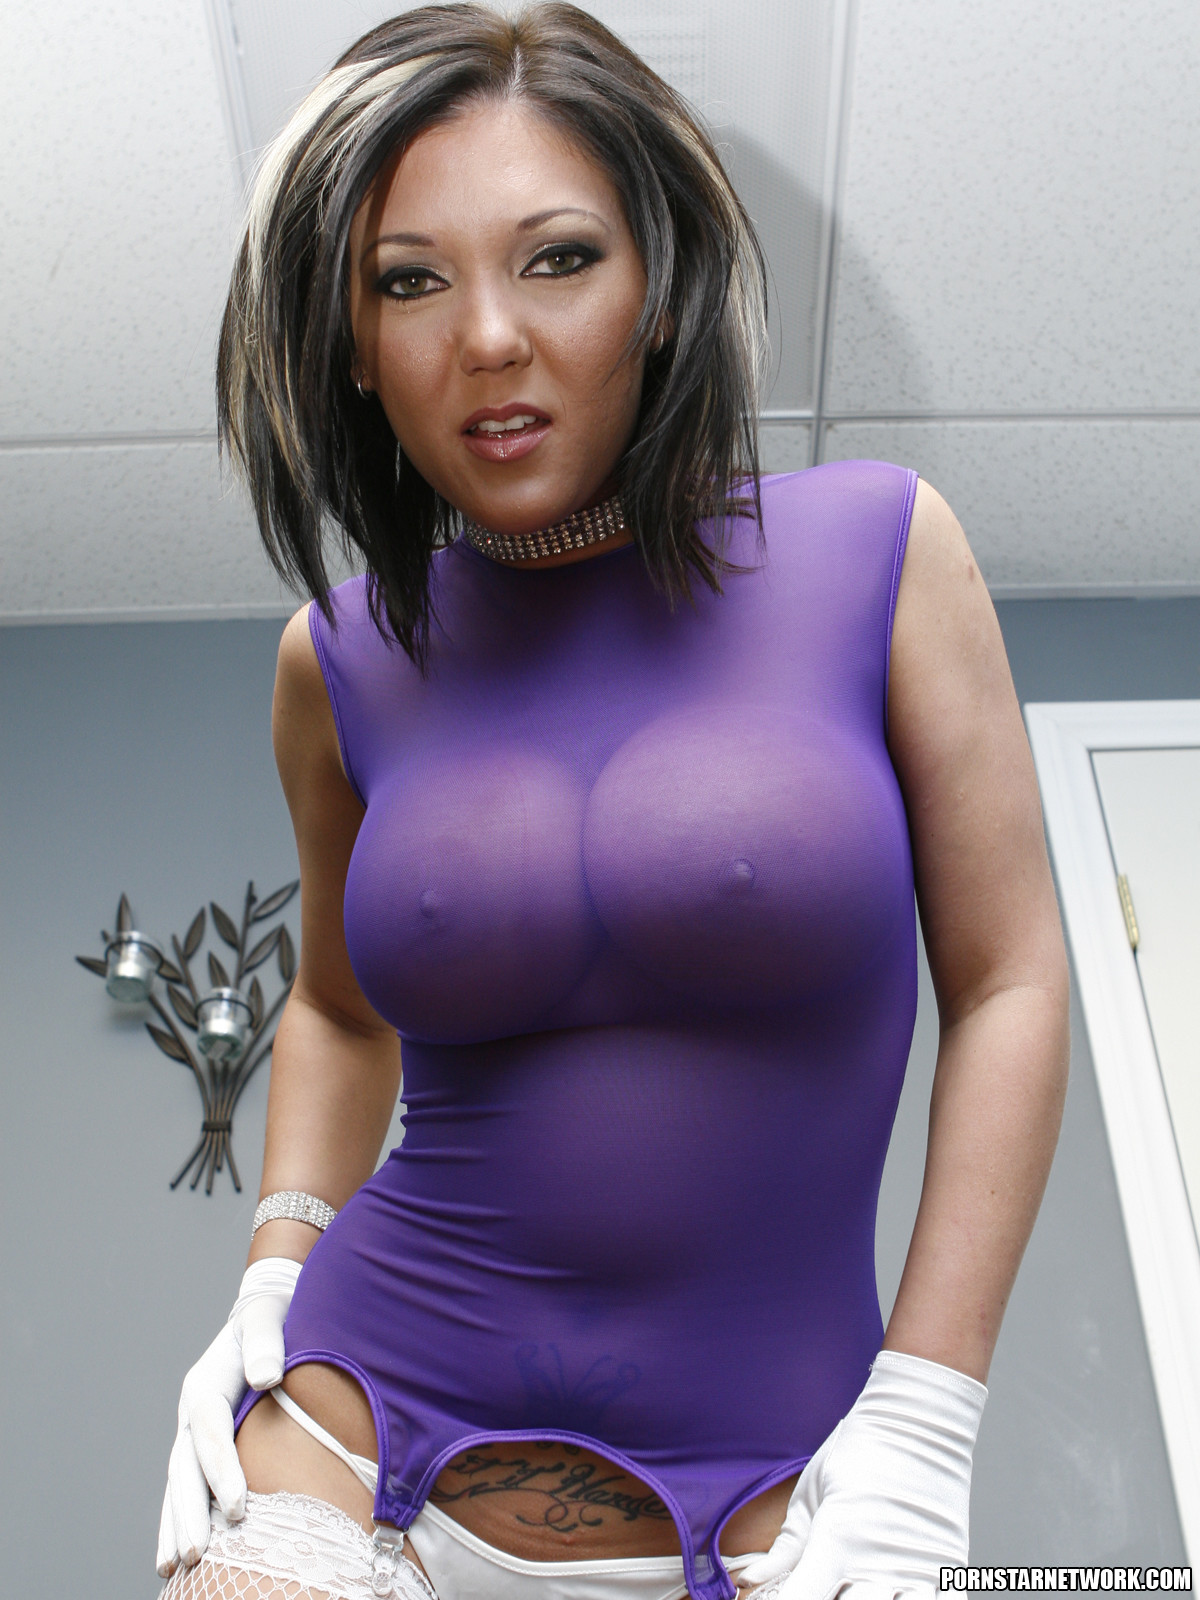 Claire Dames - Milf With Big Tits Needs It Bad 58990-7451